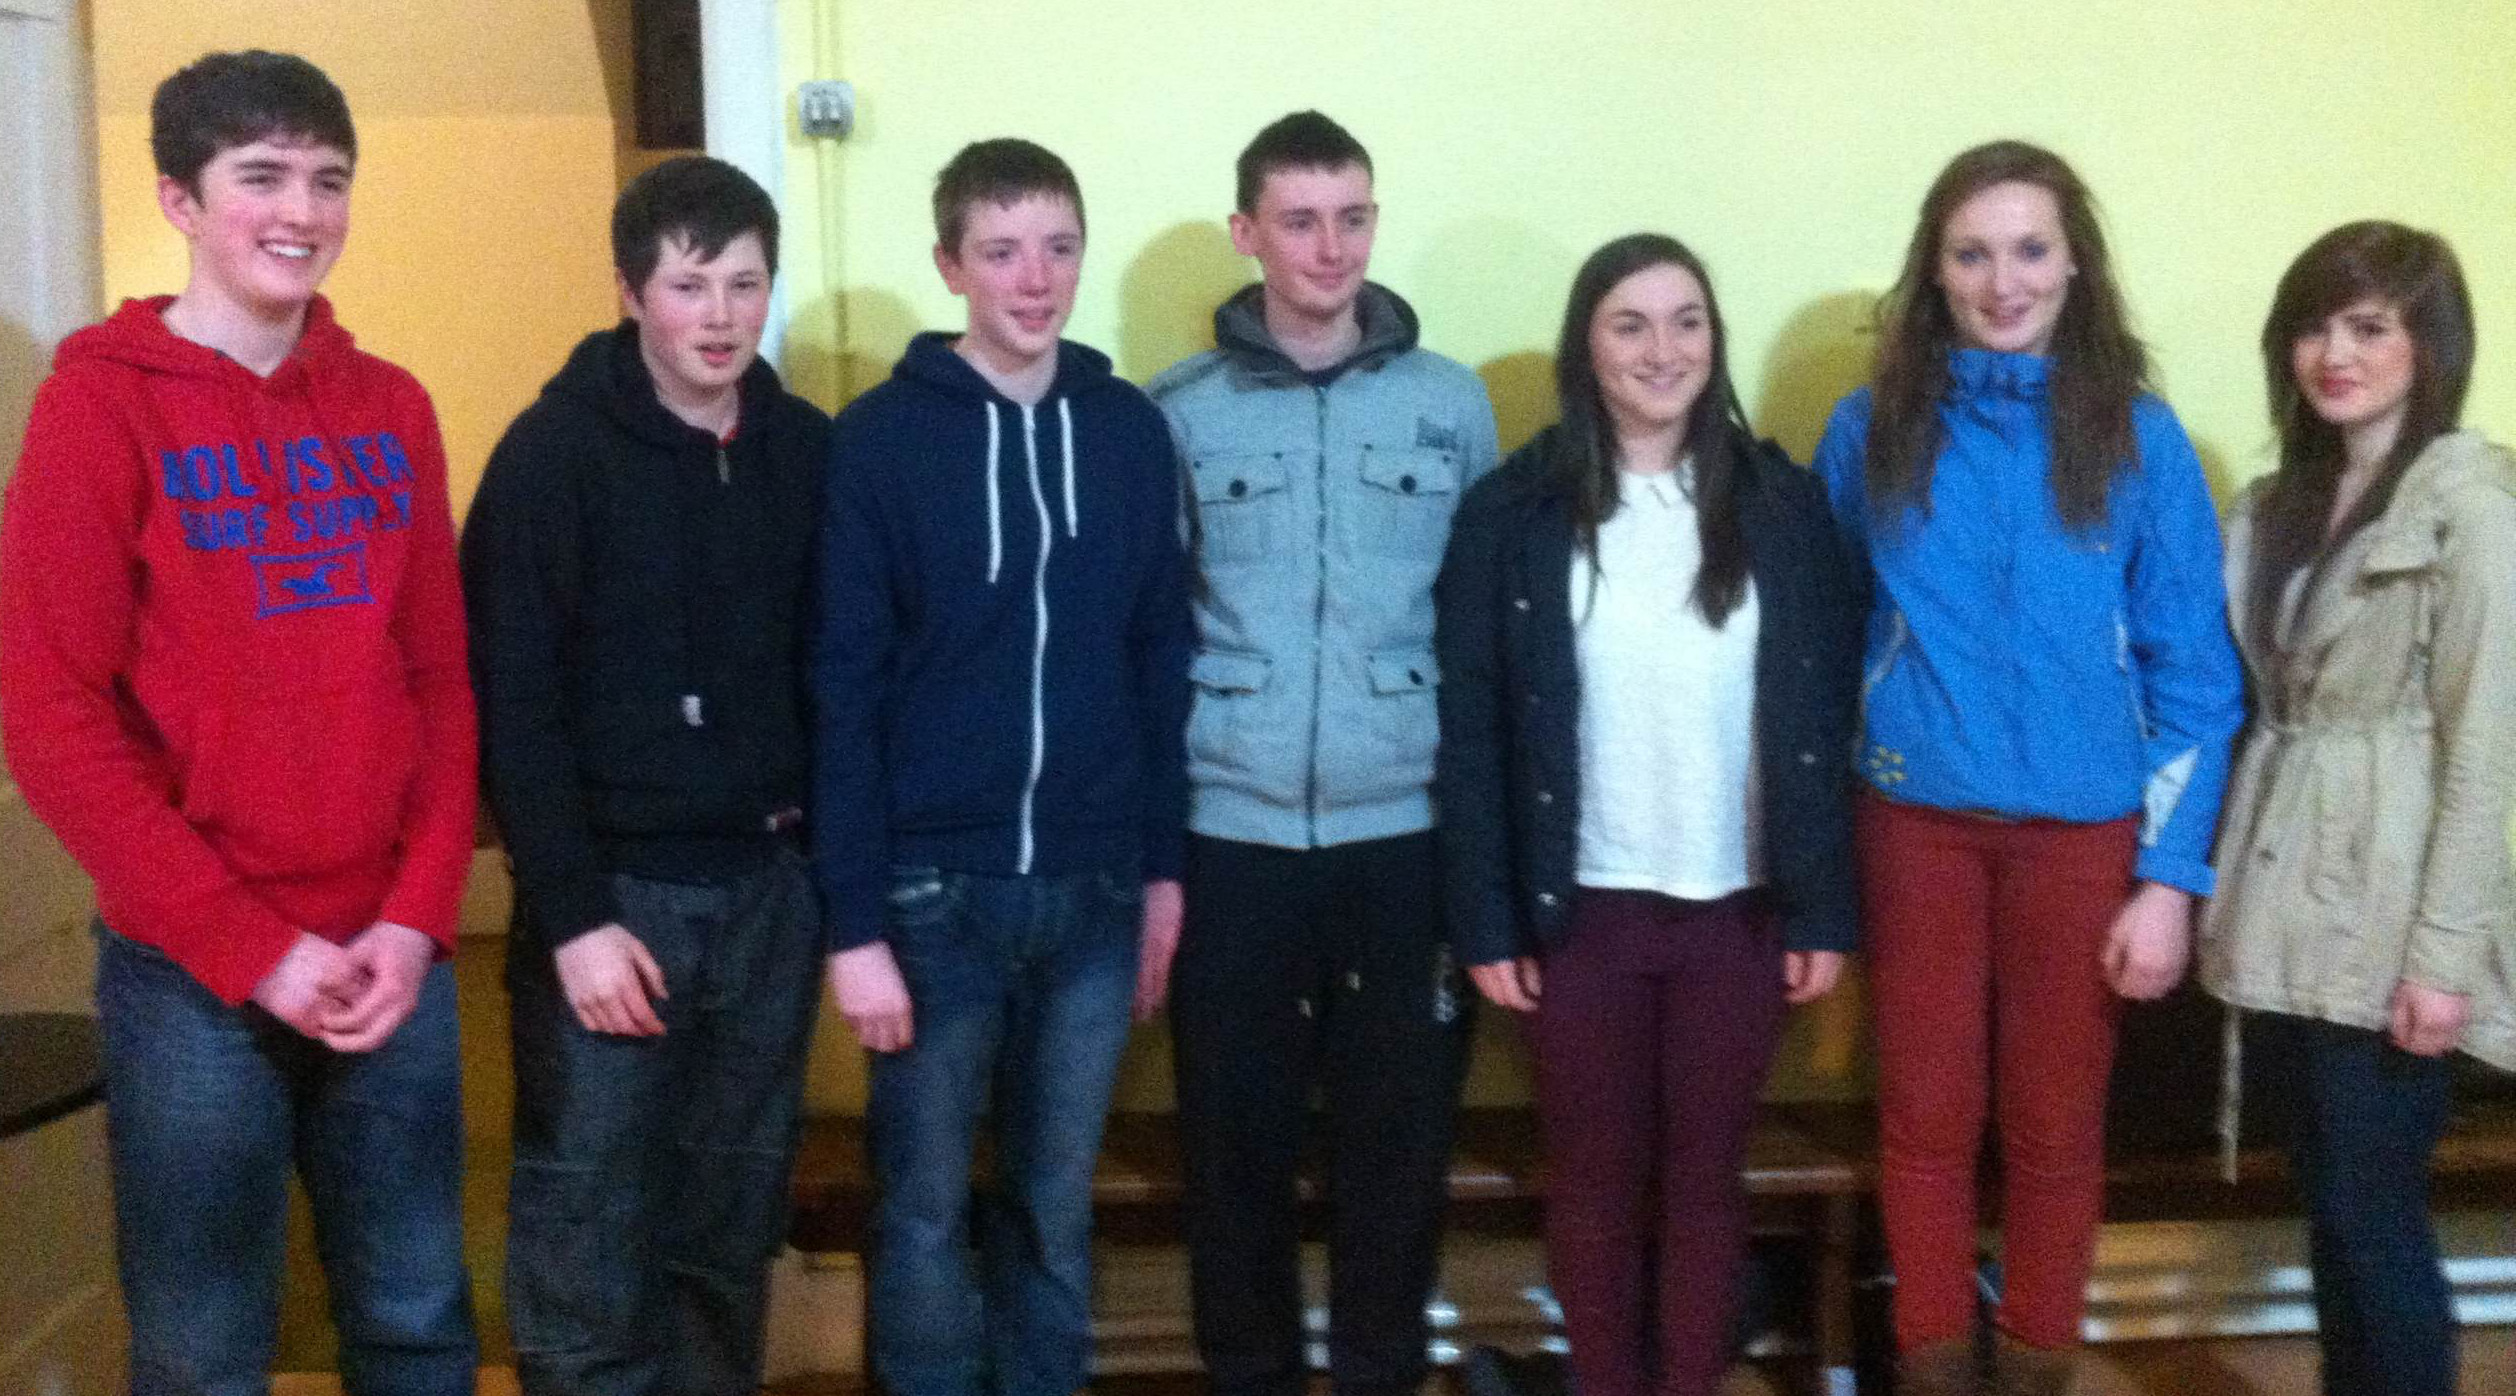 Sligo Cathedral Youth Liturgy